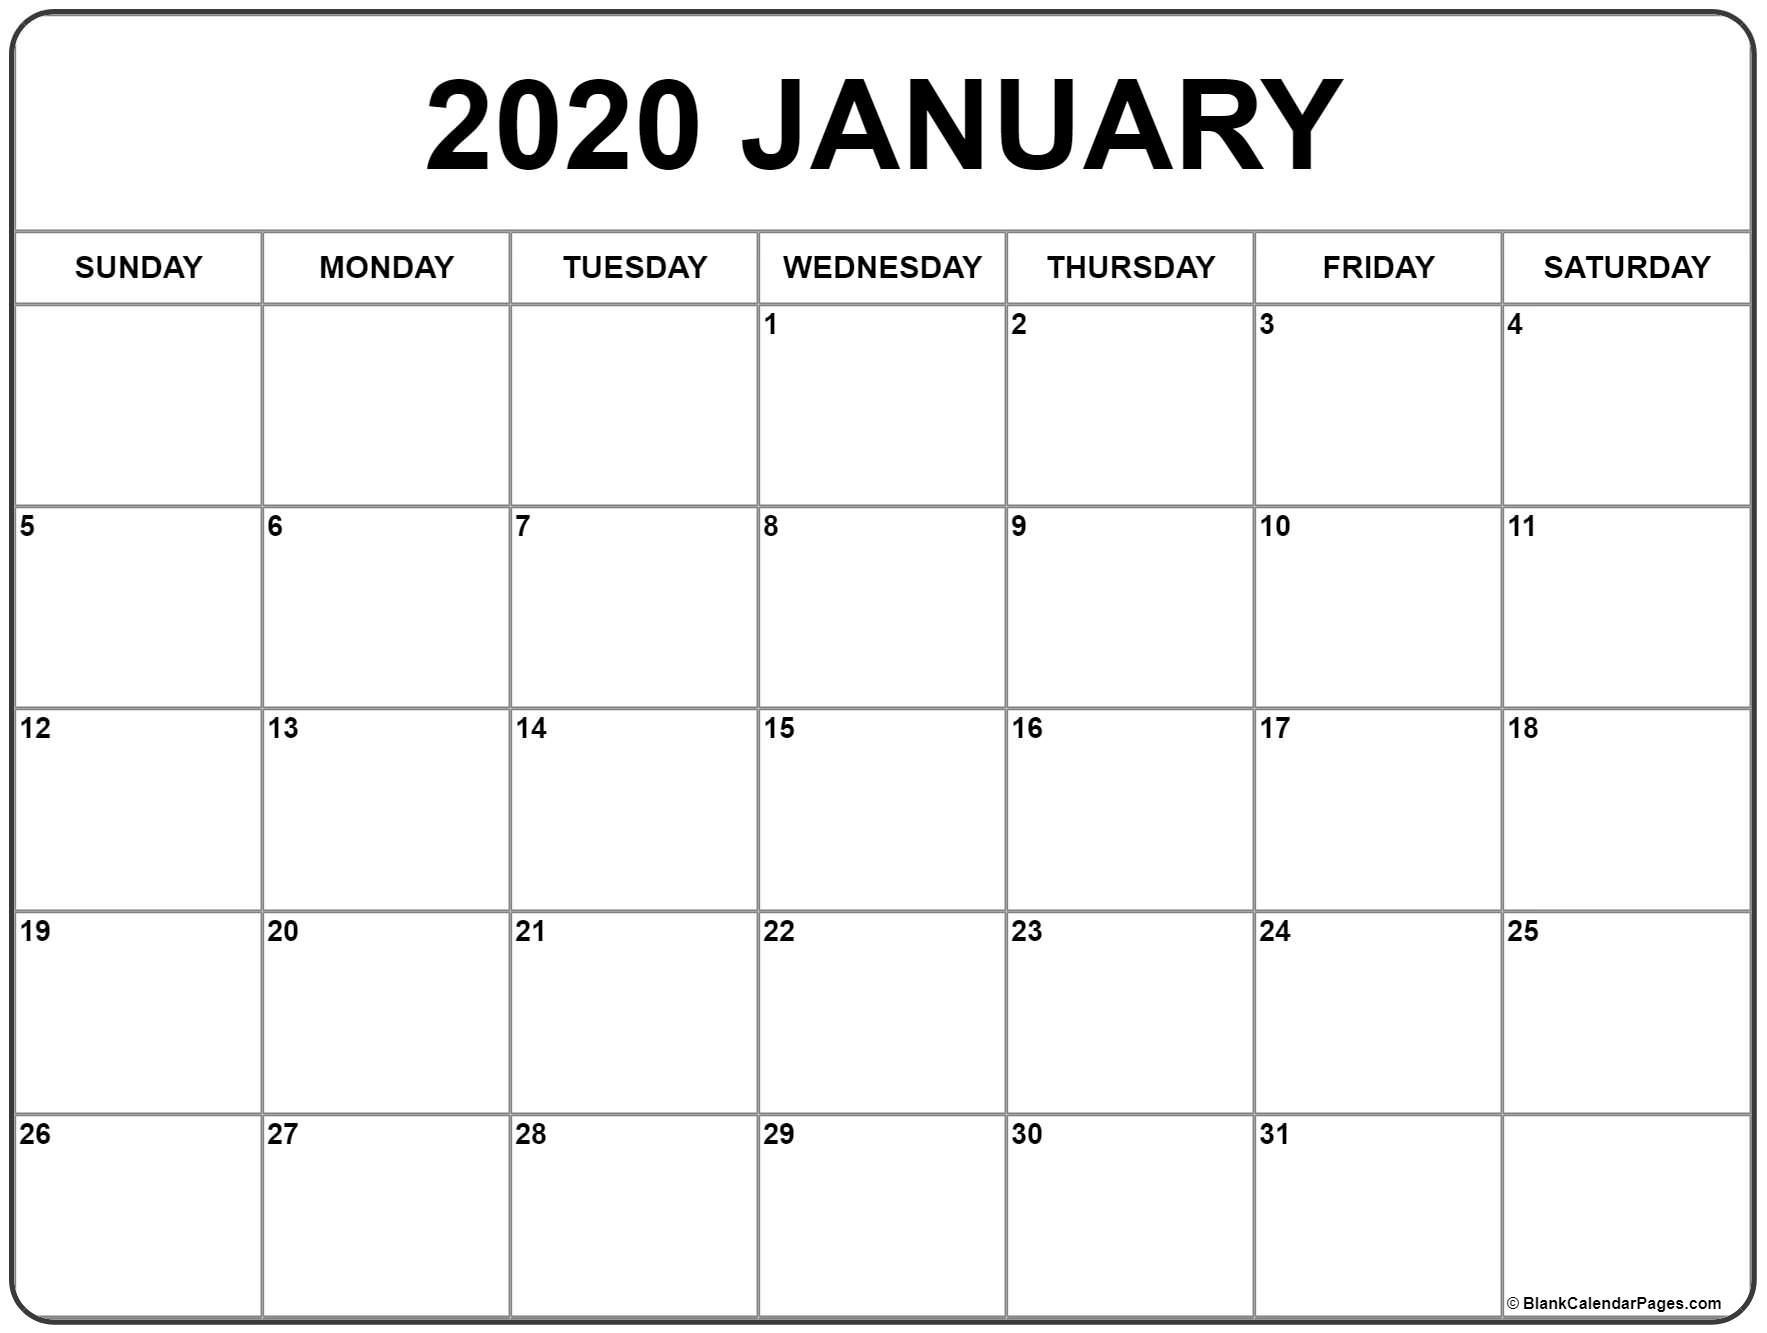 January 2020 Calendar | Free Printable Monthly Calendars-Blank 2020 Calendar Month By Month